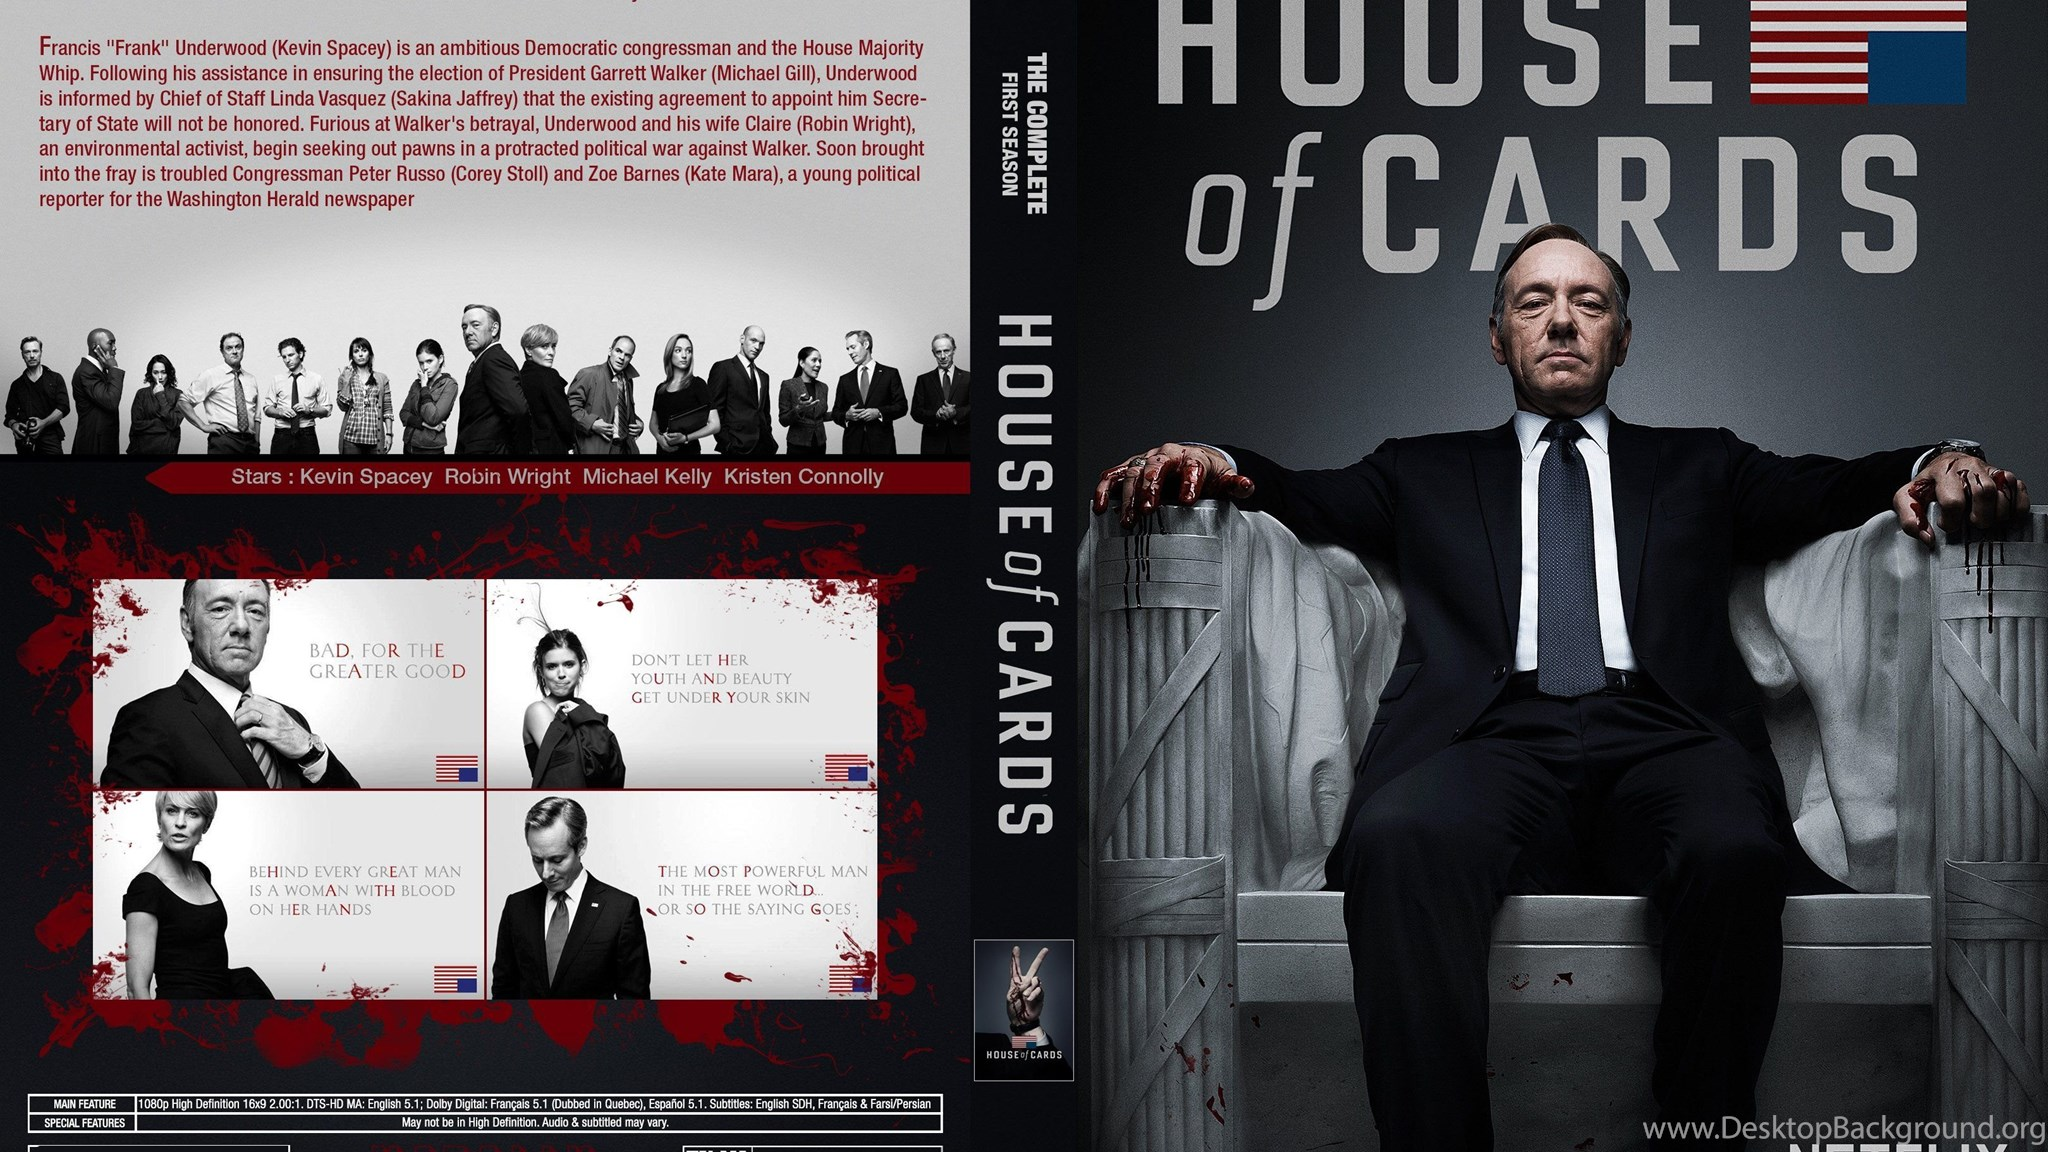 House Of Cards Political Drama Series 30 Wallpapers Desktop Background